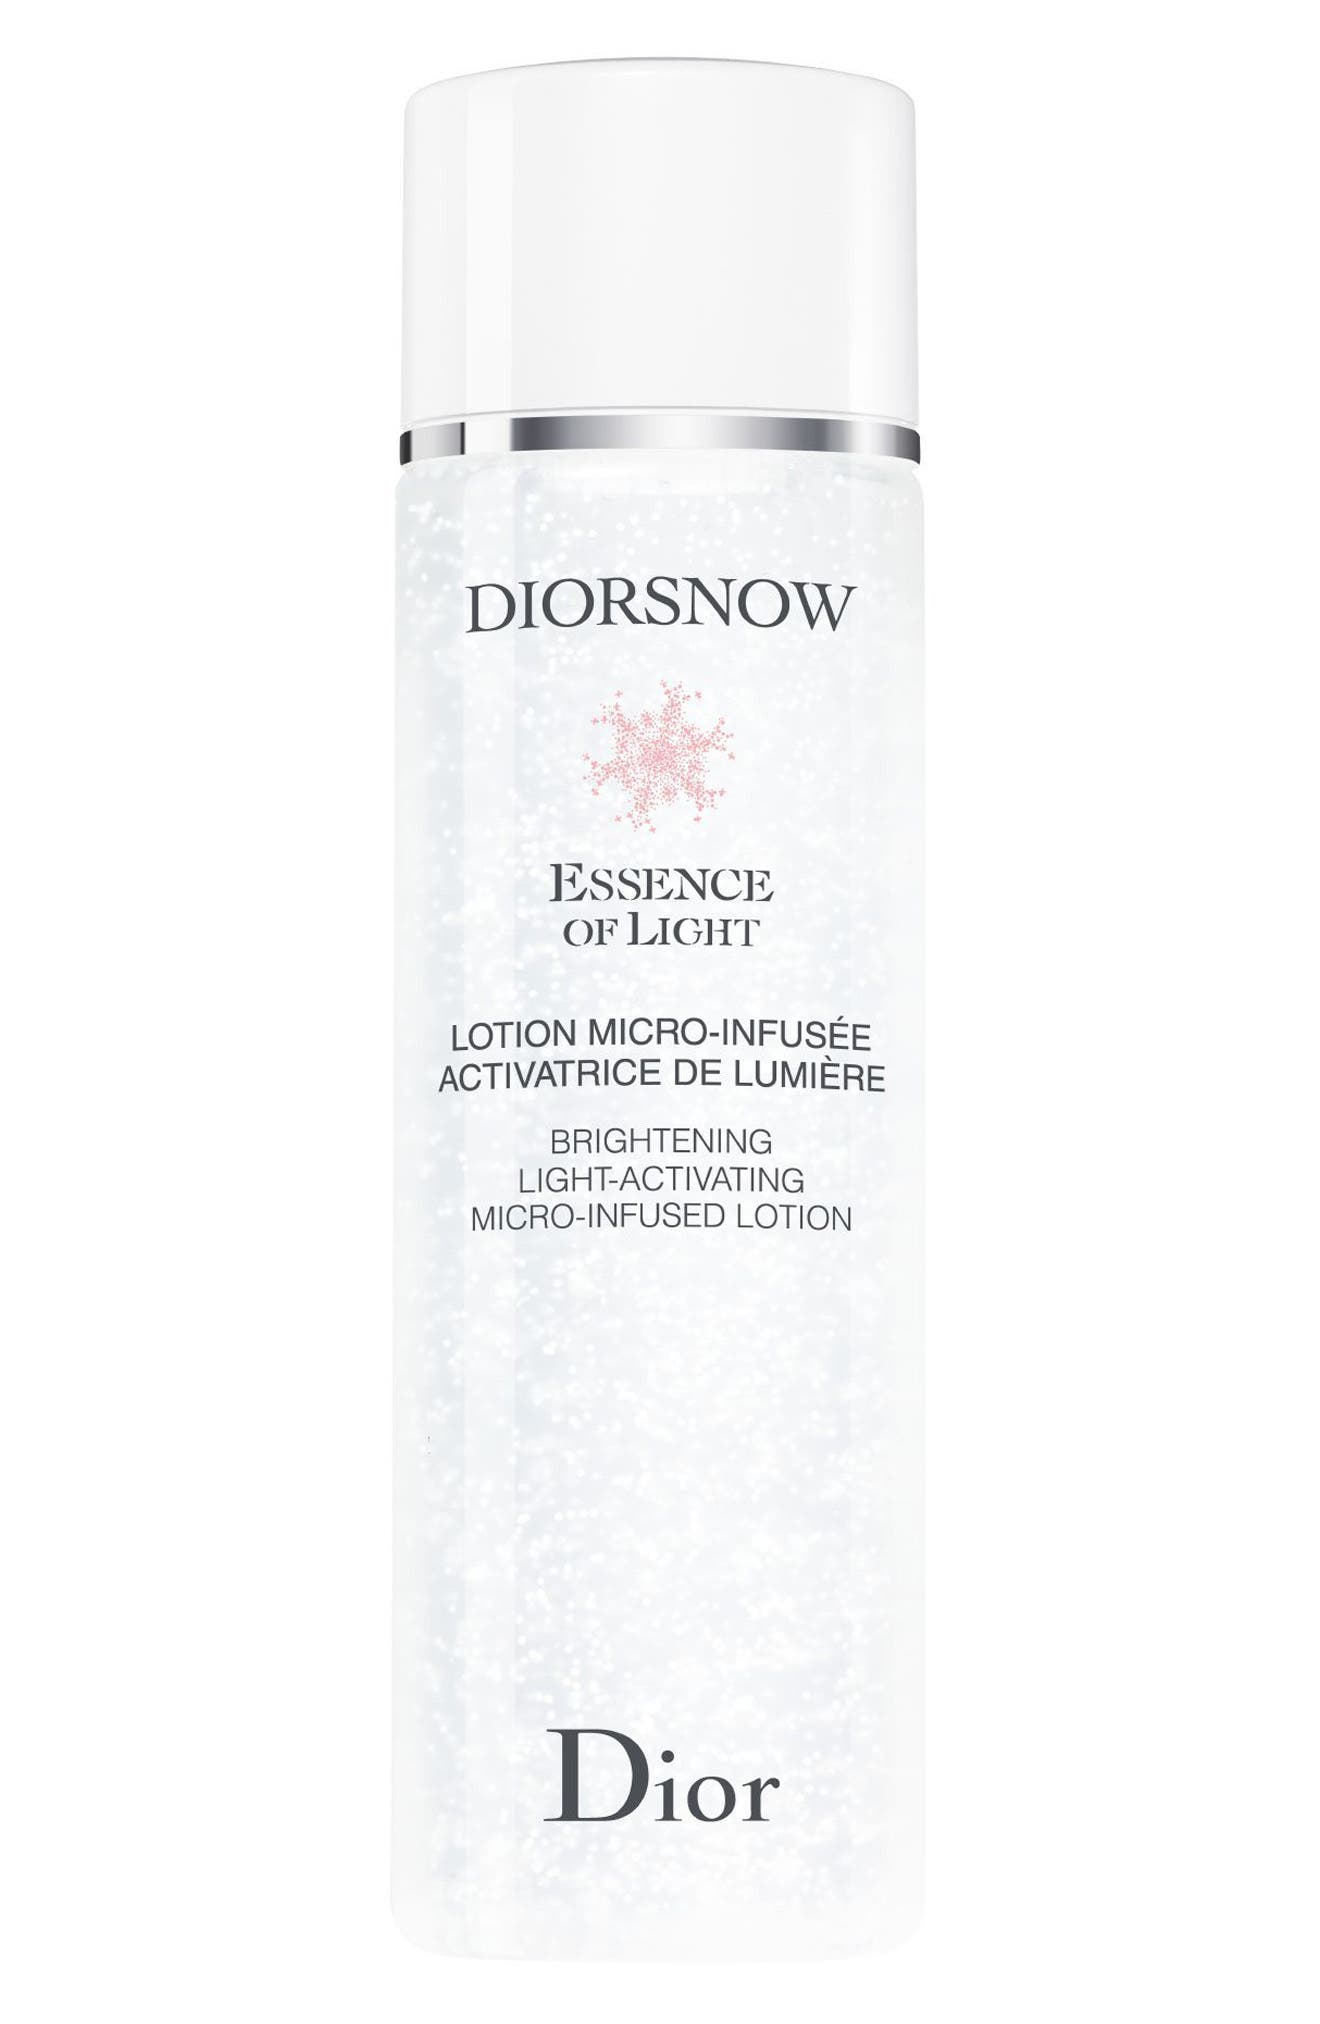 Dior Diorsnow Brightening Light-Activating Micro Infused Lotion